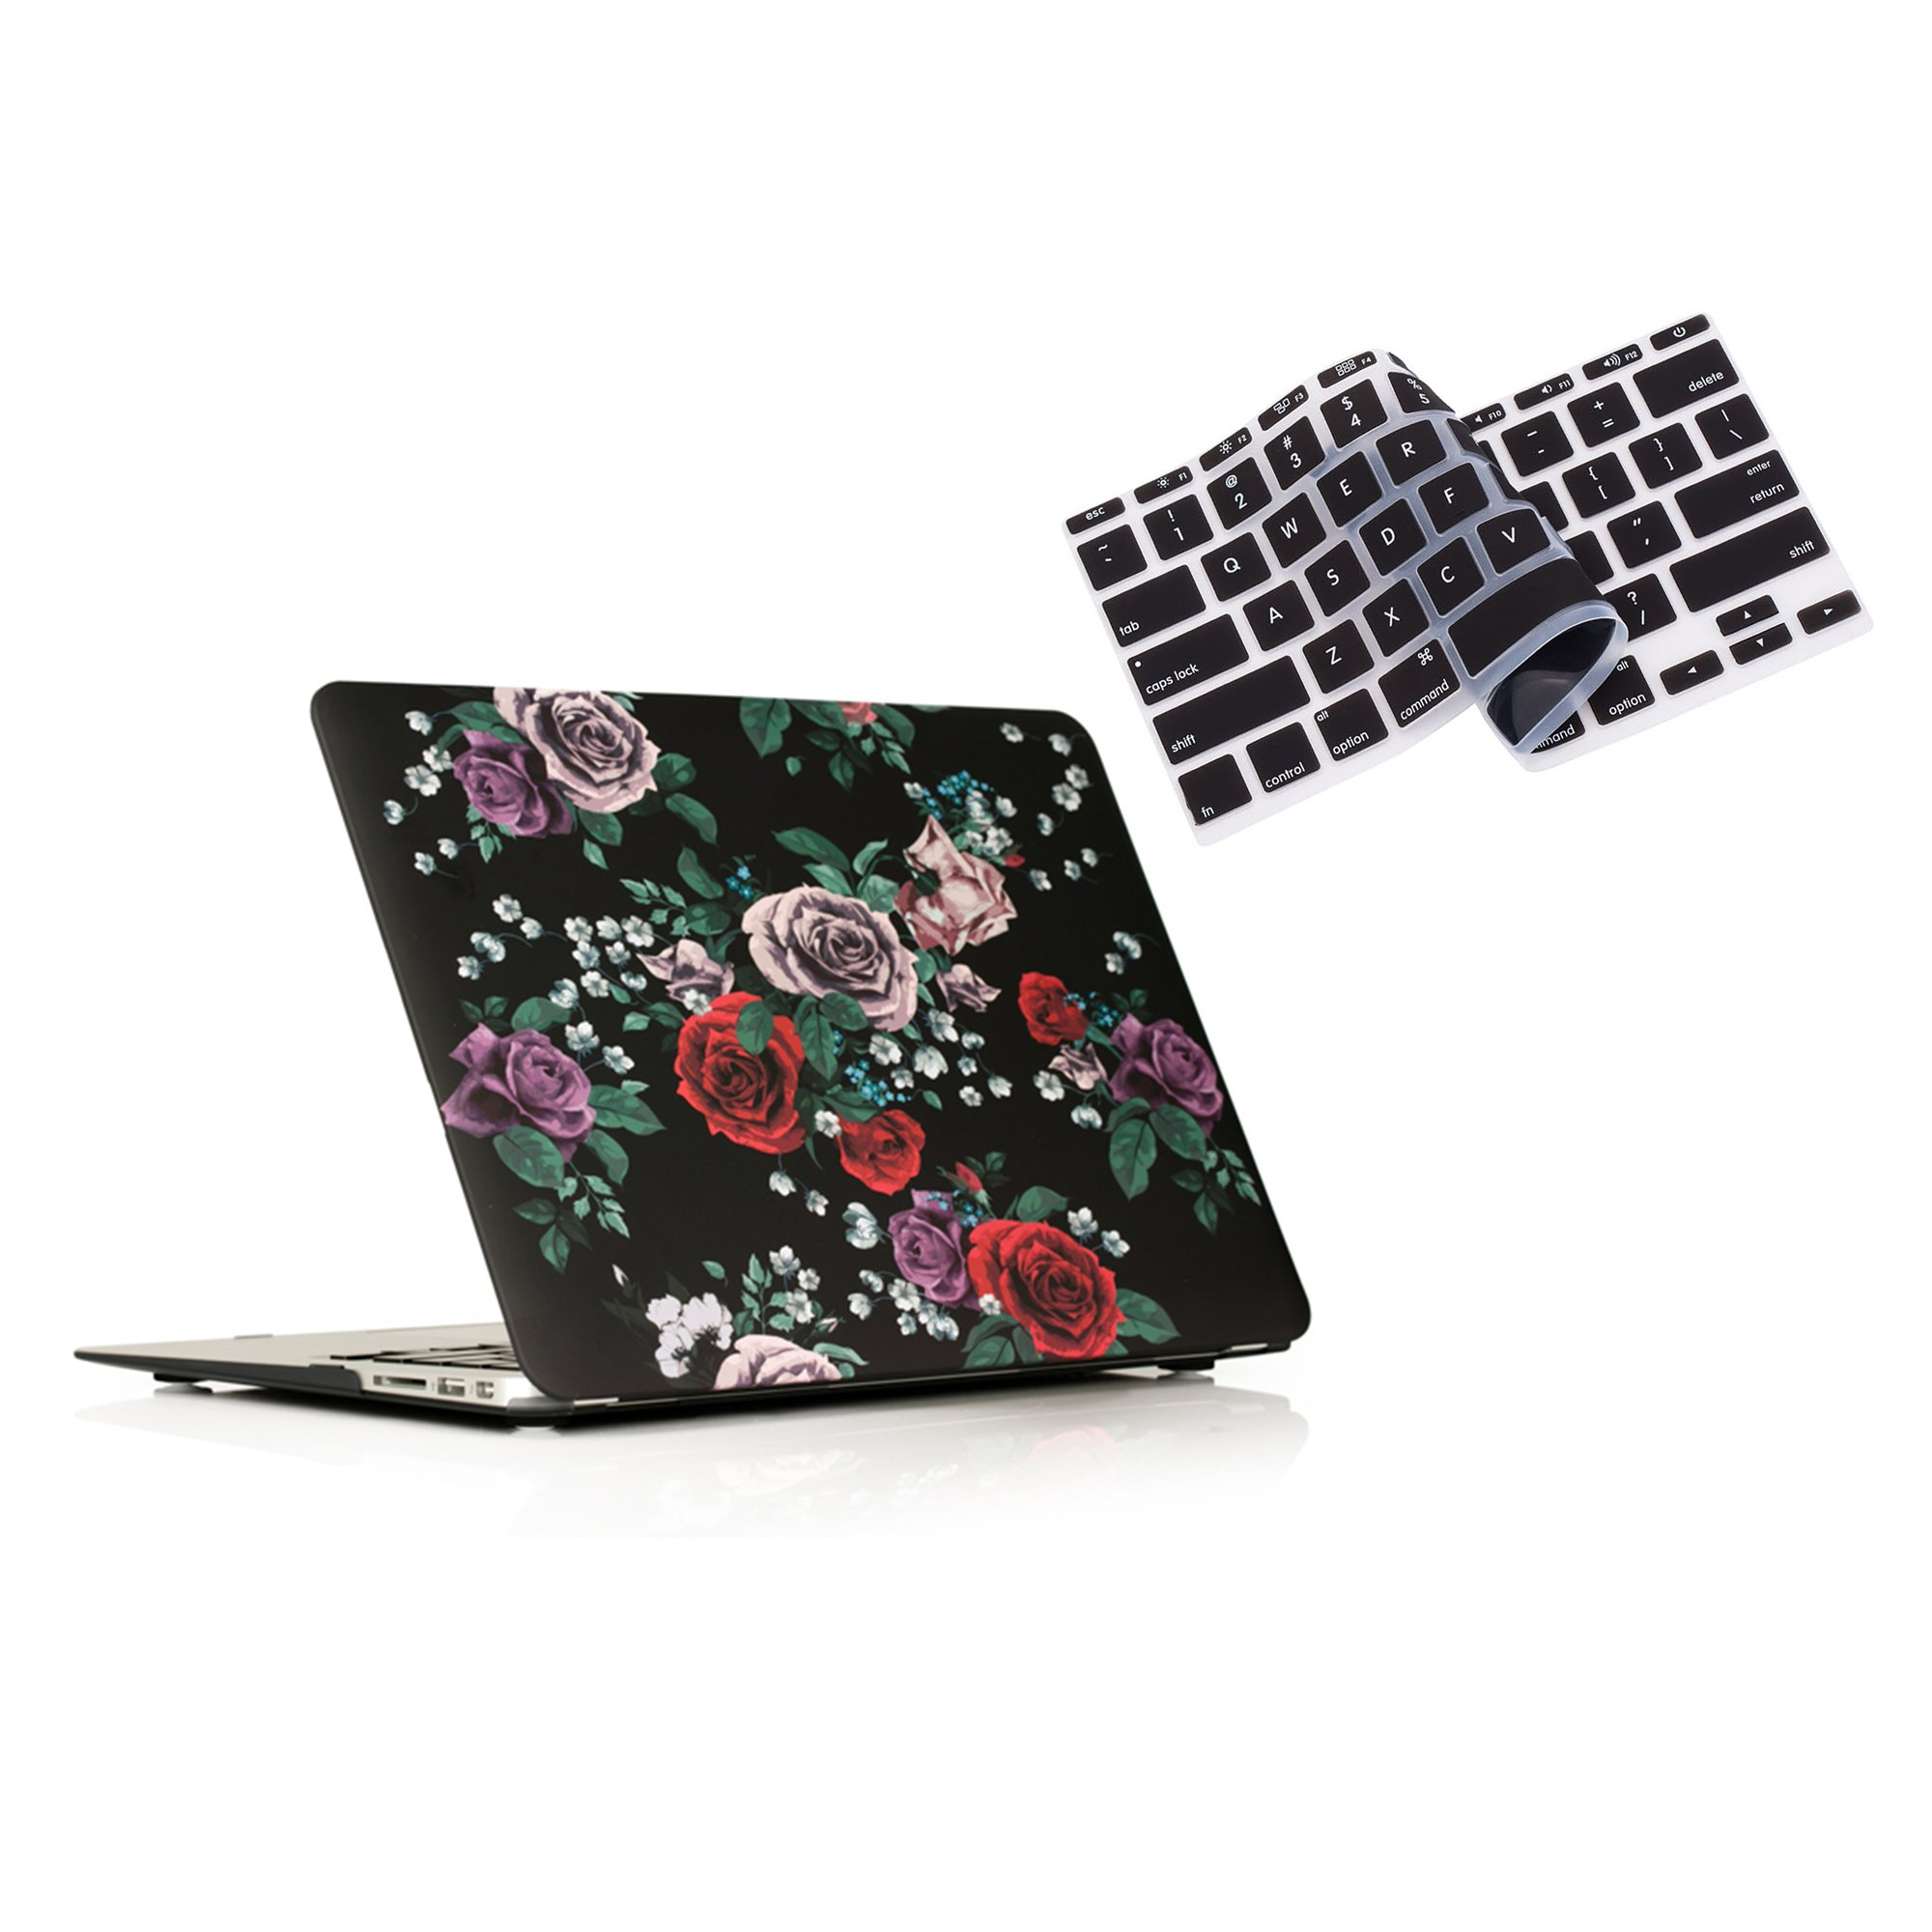 RUBAN Plastic Hard Case and Keyboard Cover for MacBook Air 13 inch (Models: A1369 / A1466) - Rose Flower